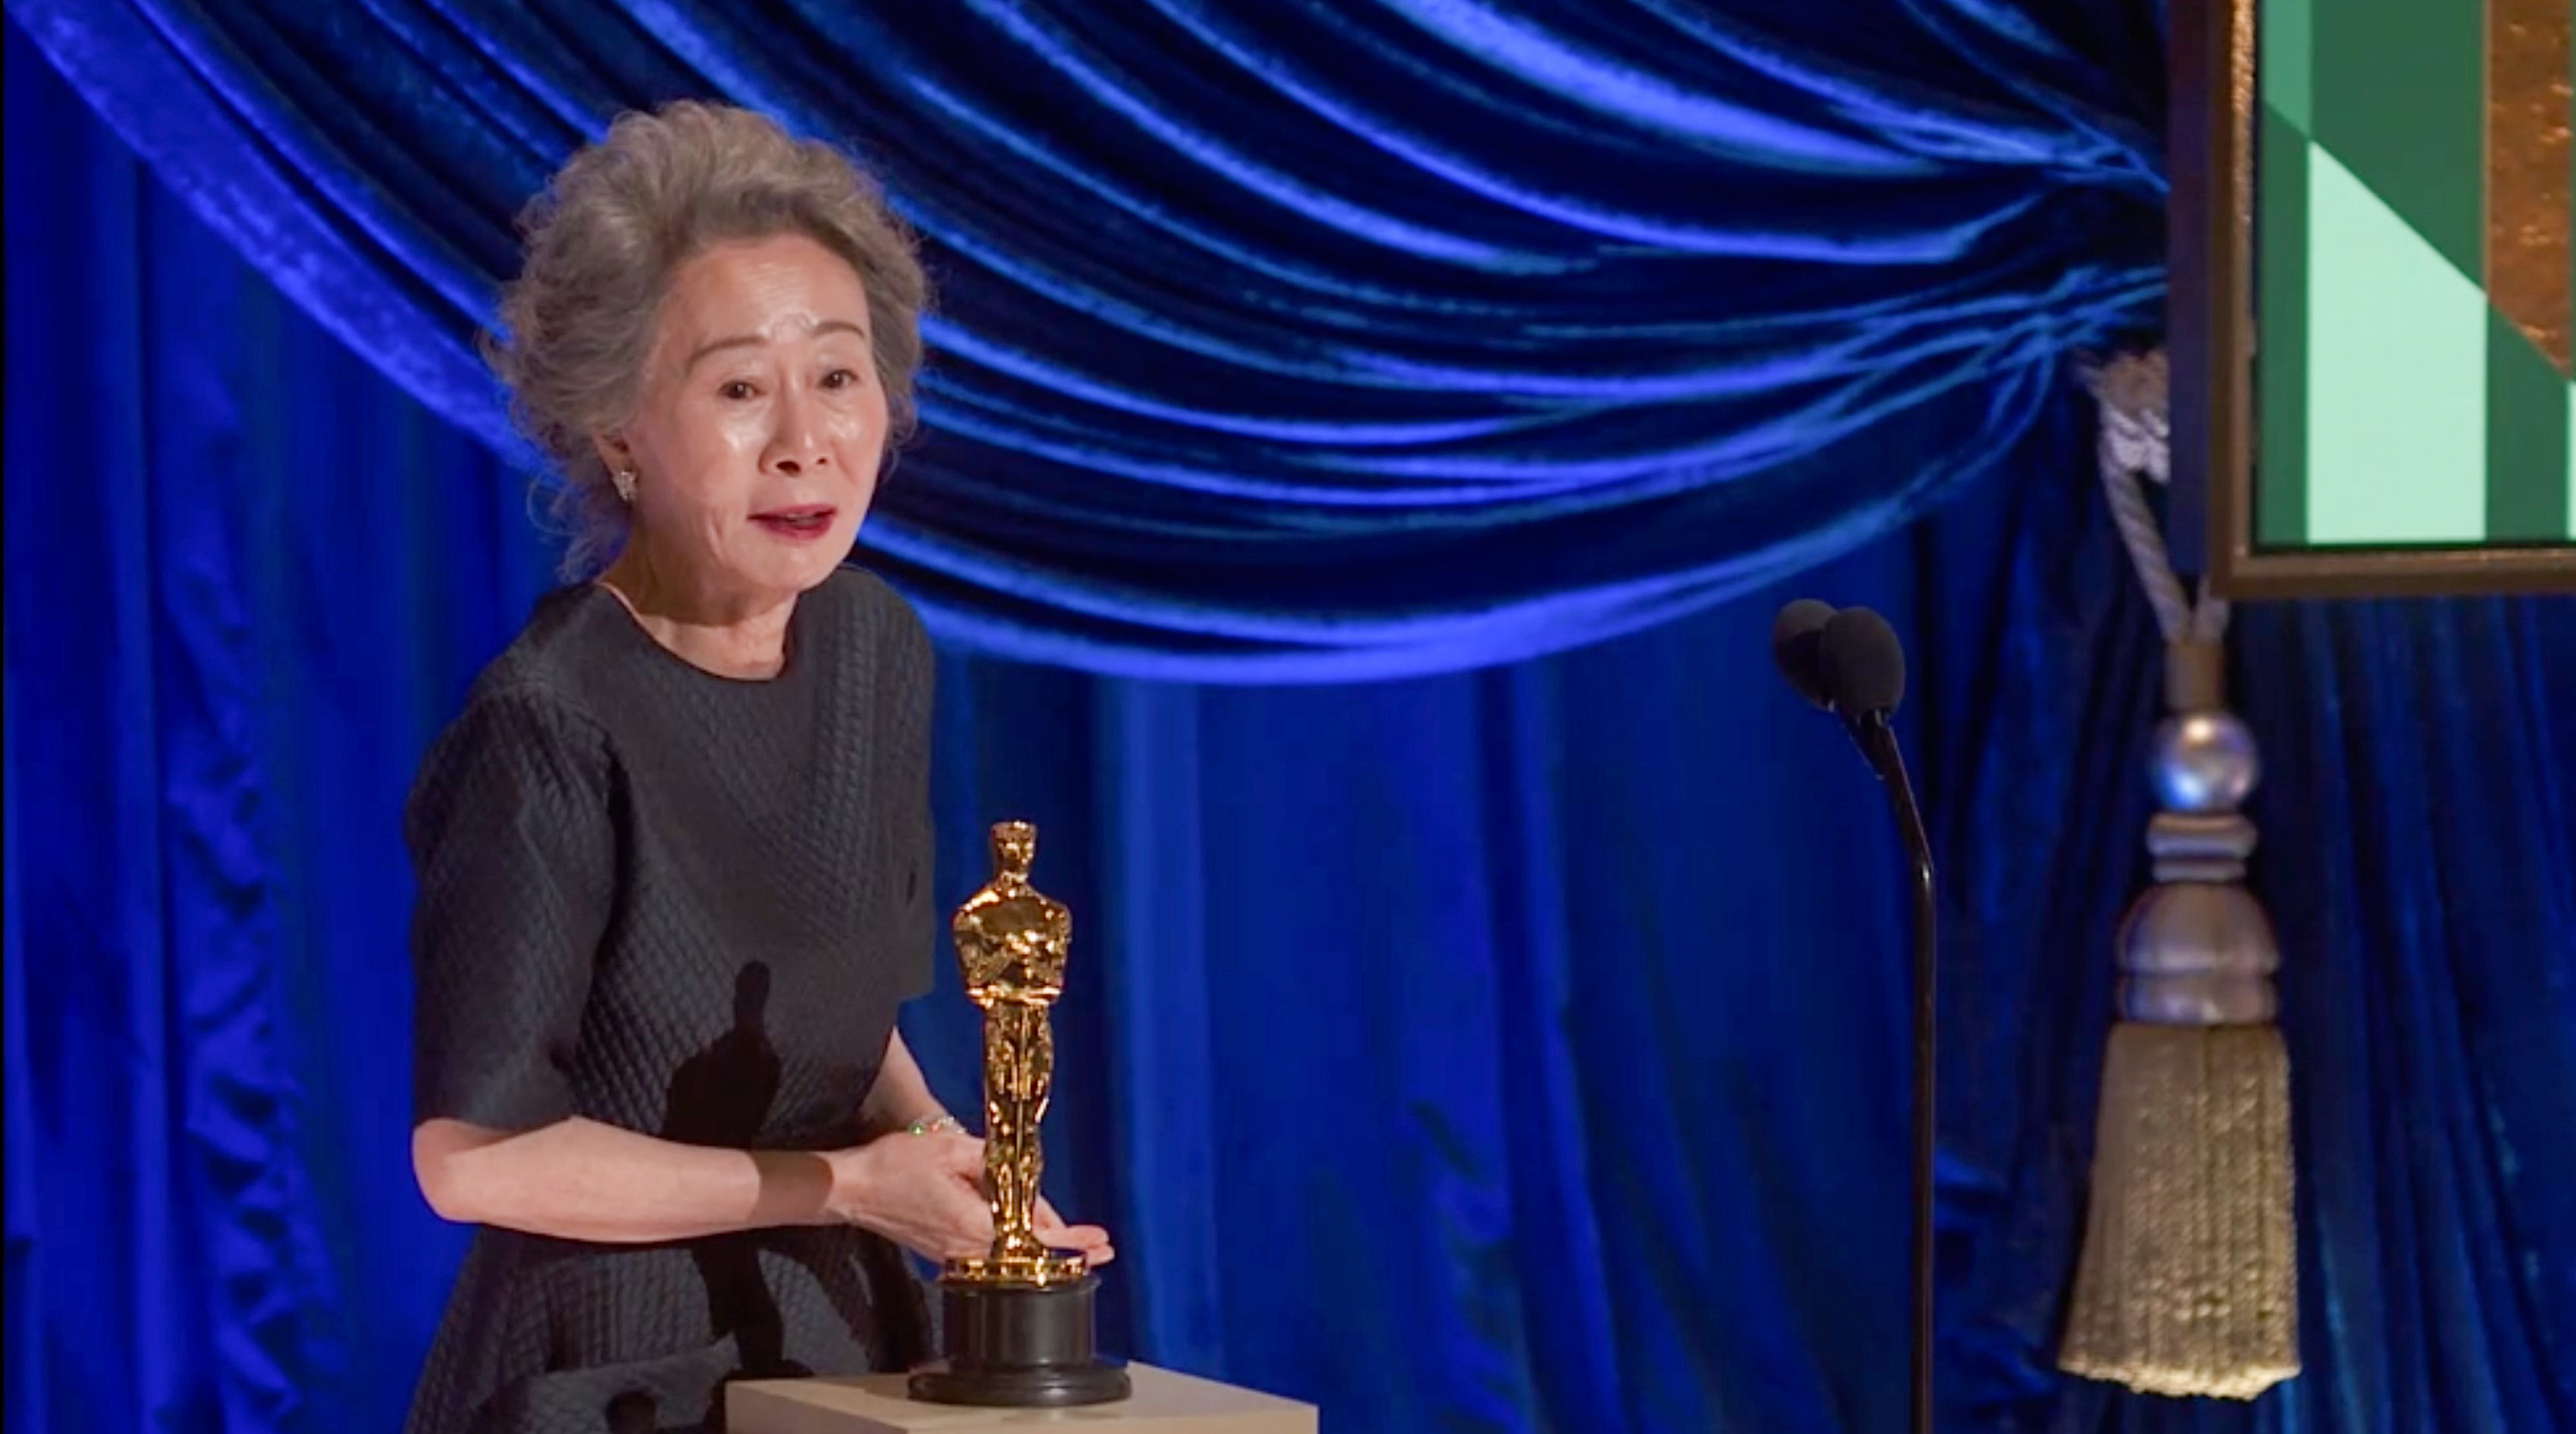 Yuh-Jung Youn accepting the Oscar for Best Supporting Actress for 'Minari'